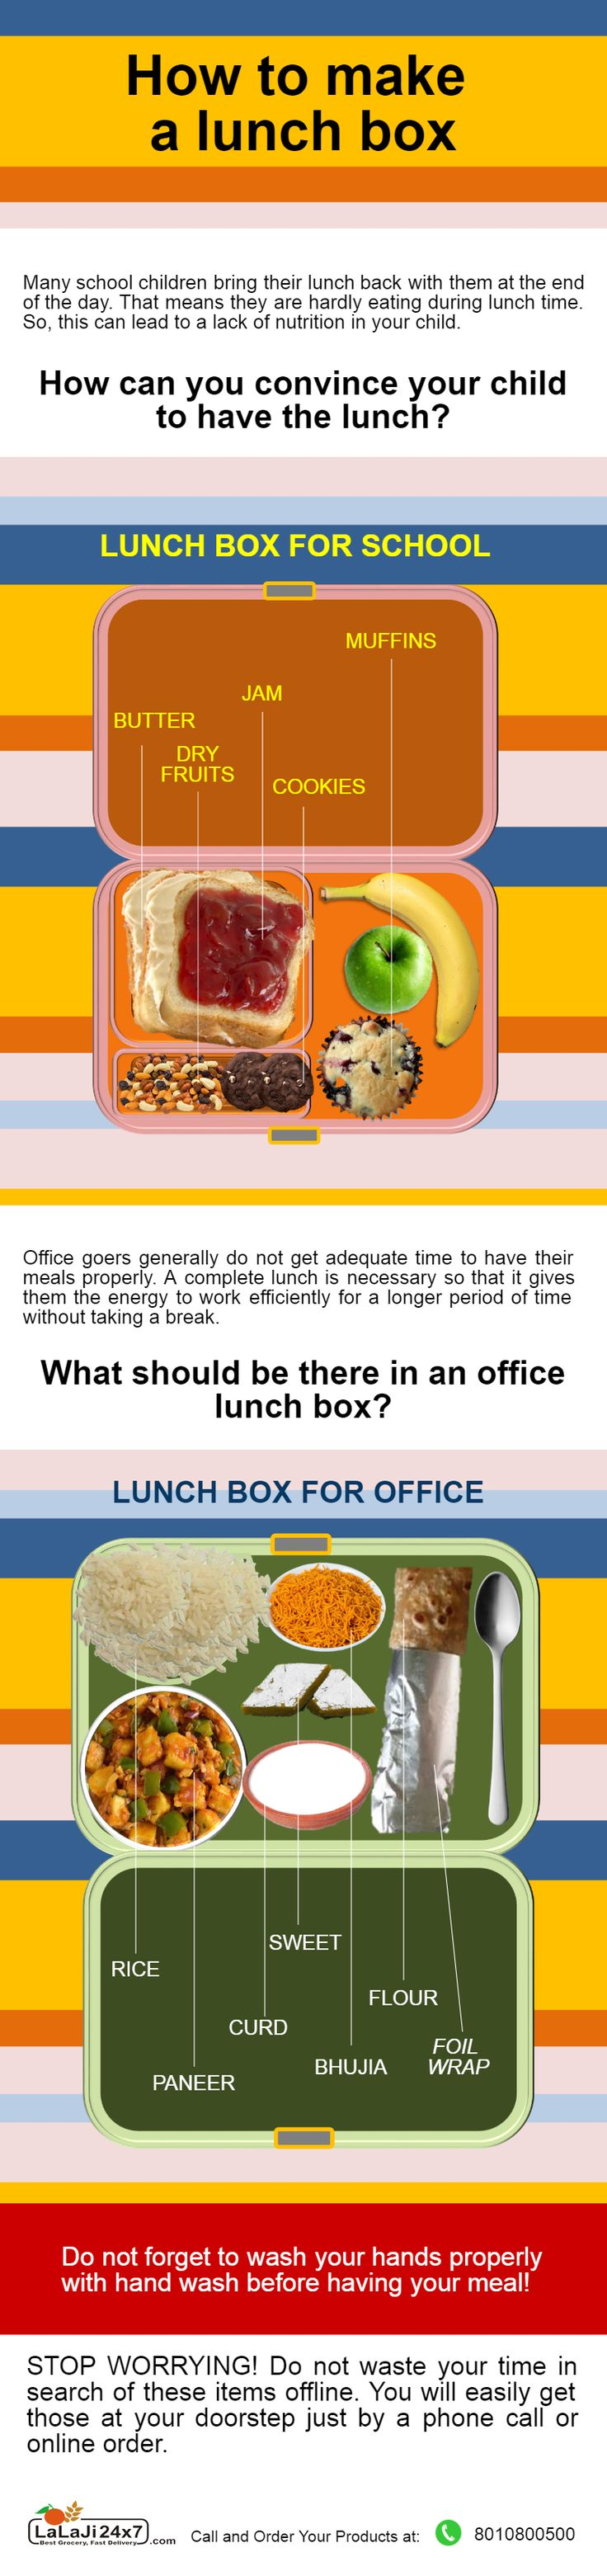 Follow these simple steps, showed in this infographic to make a healthy lunch box for your school child and Office goers family member. This chart will help you give the way to add nutrition in their lunch box. This infographic is created by Lalaji24x7 Team.